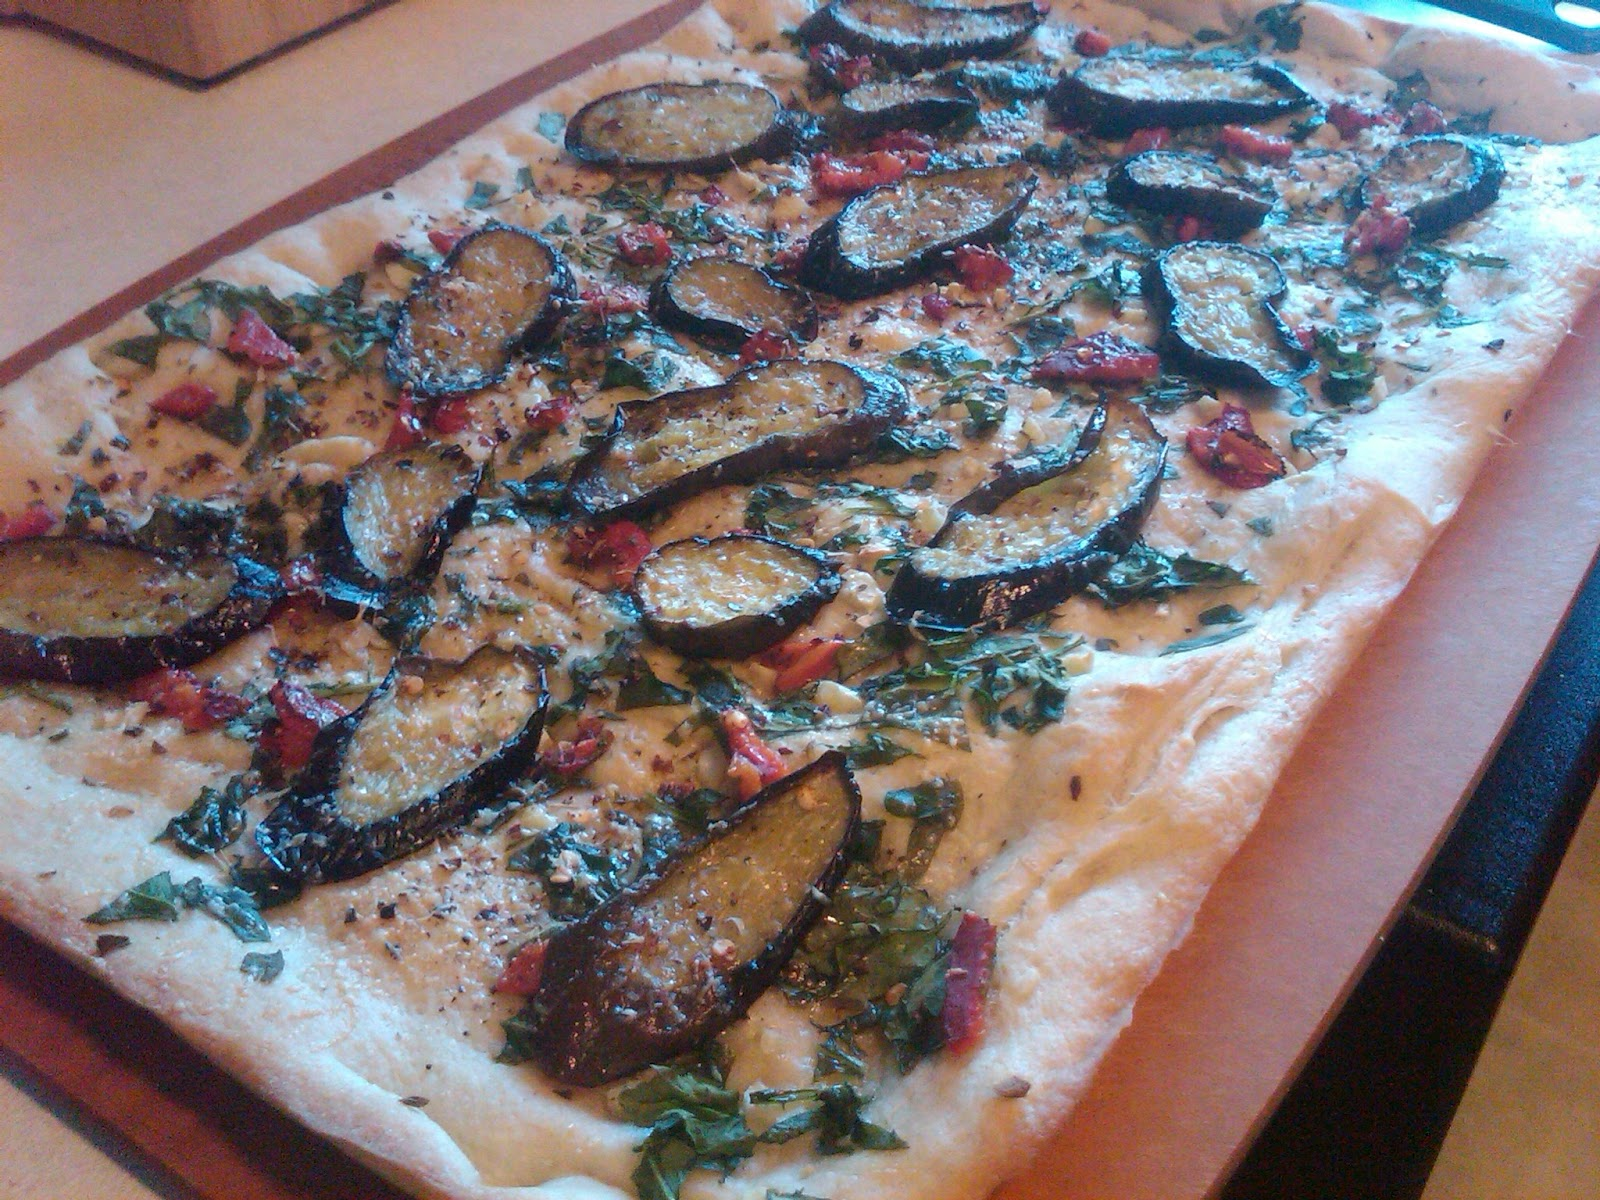 Legally Delicious: Eggplant, Spinach, and Roasted Red Pepper Pizza